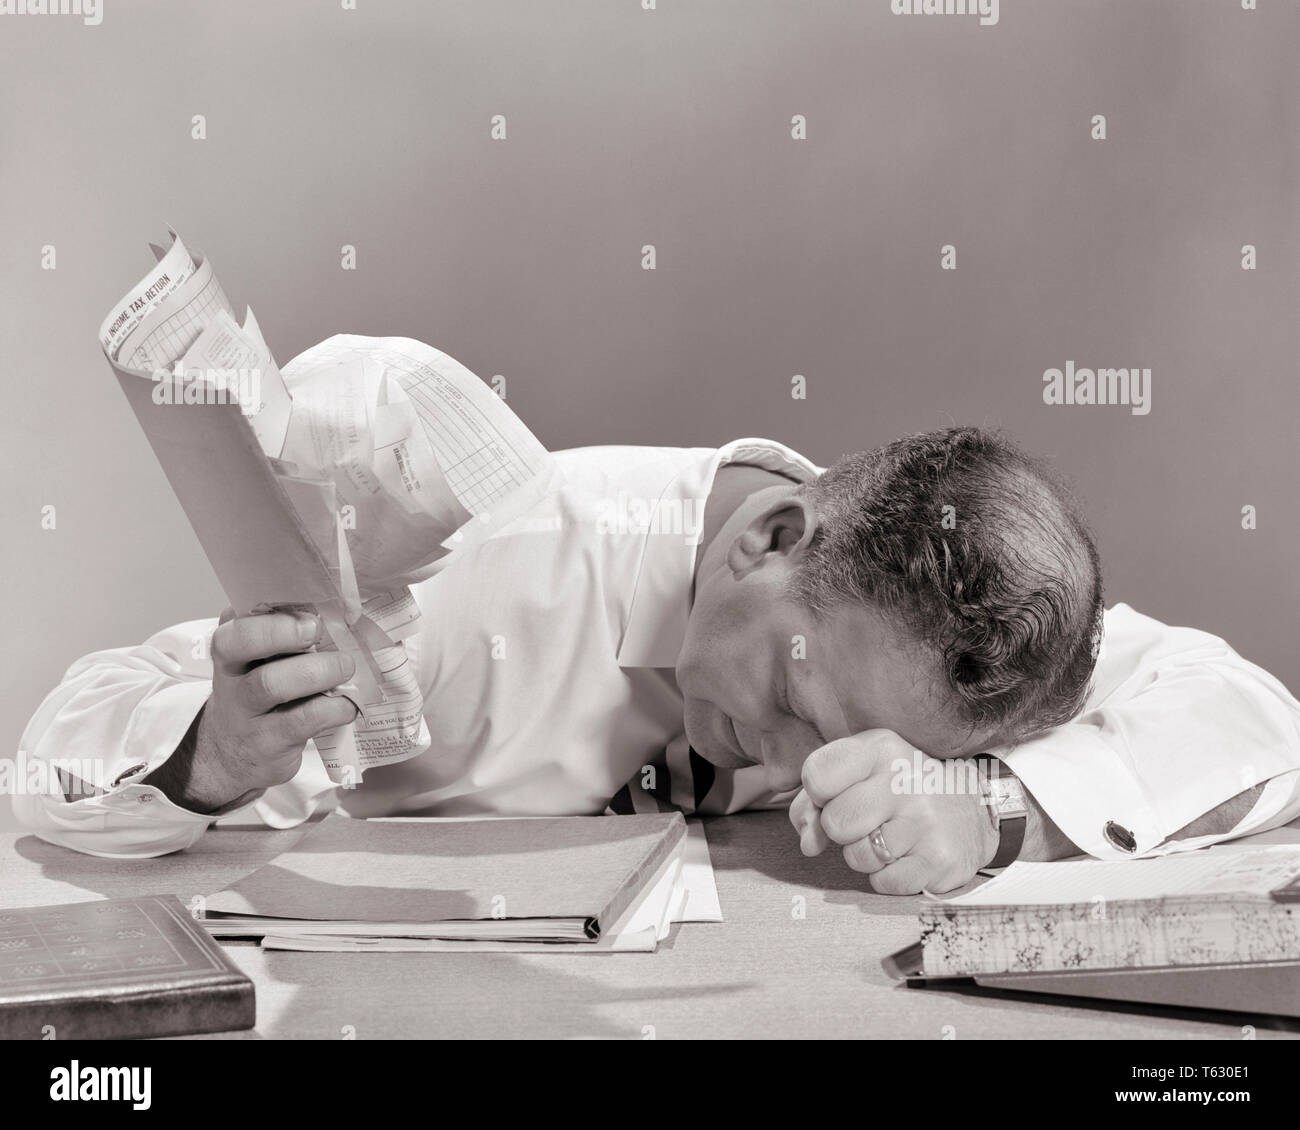 1950s EXASPERATED businessman at desk head down resting on fist holding BILLS INVOICES documents papers clutched in other hand - s12996 HAR001 HARS ANGER FEAR COMMUNICATION FIST COMPETITION INFORMATION LIFESTYLE JOBS STUDIO SHOT MOODY MANAGER COPY SPACE PERSONS MALES RISK EXECUTIVES HEADACHE EXPRESSIONS TROUBLED B&W RESTING SADNESS WHITE COLLAR SKILL OCCUPATION DOCUMENTS SKILLS HEAD AND SHOULDERS HIGH ANGLE OVERWHELMED BALDING KNOWLEDGE BAD NEWS BANKRUPTCY AT IN OF ON EMPLOYMENT FRUSTRATION MOOD OCCUPATIONS BOSSES CONCEPTUAL GLUM ESCAPE BALD SPOT BANKRUPT EMPLOYEE PAPER WORK DISGRUNTLED - Stock Image